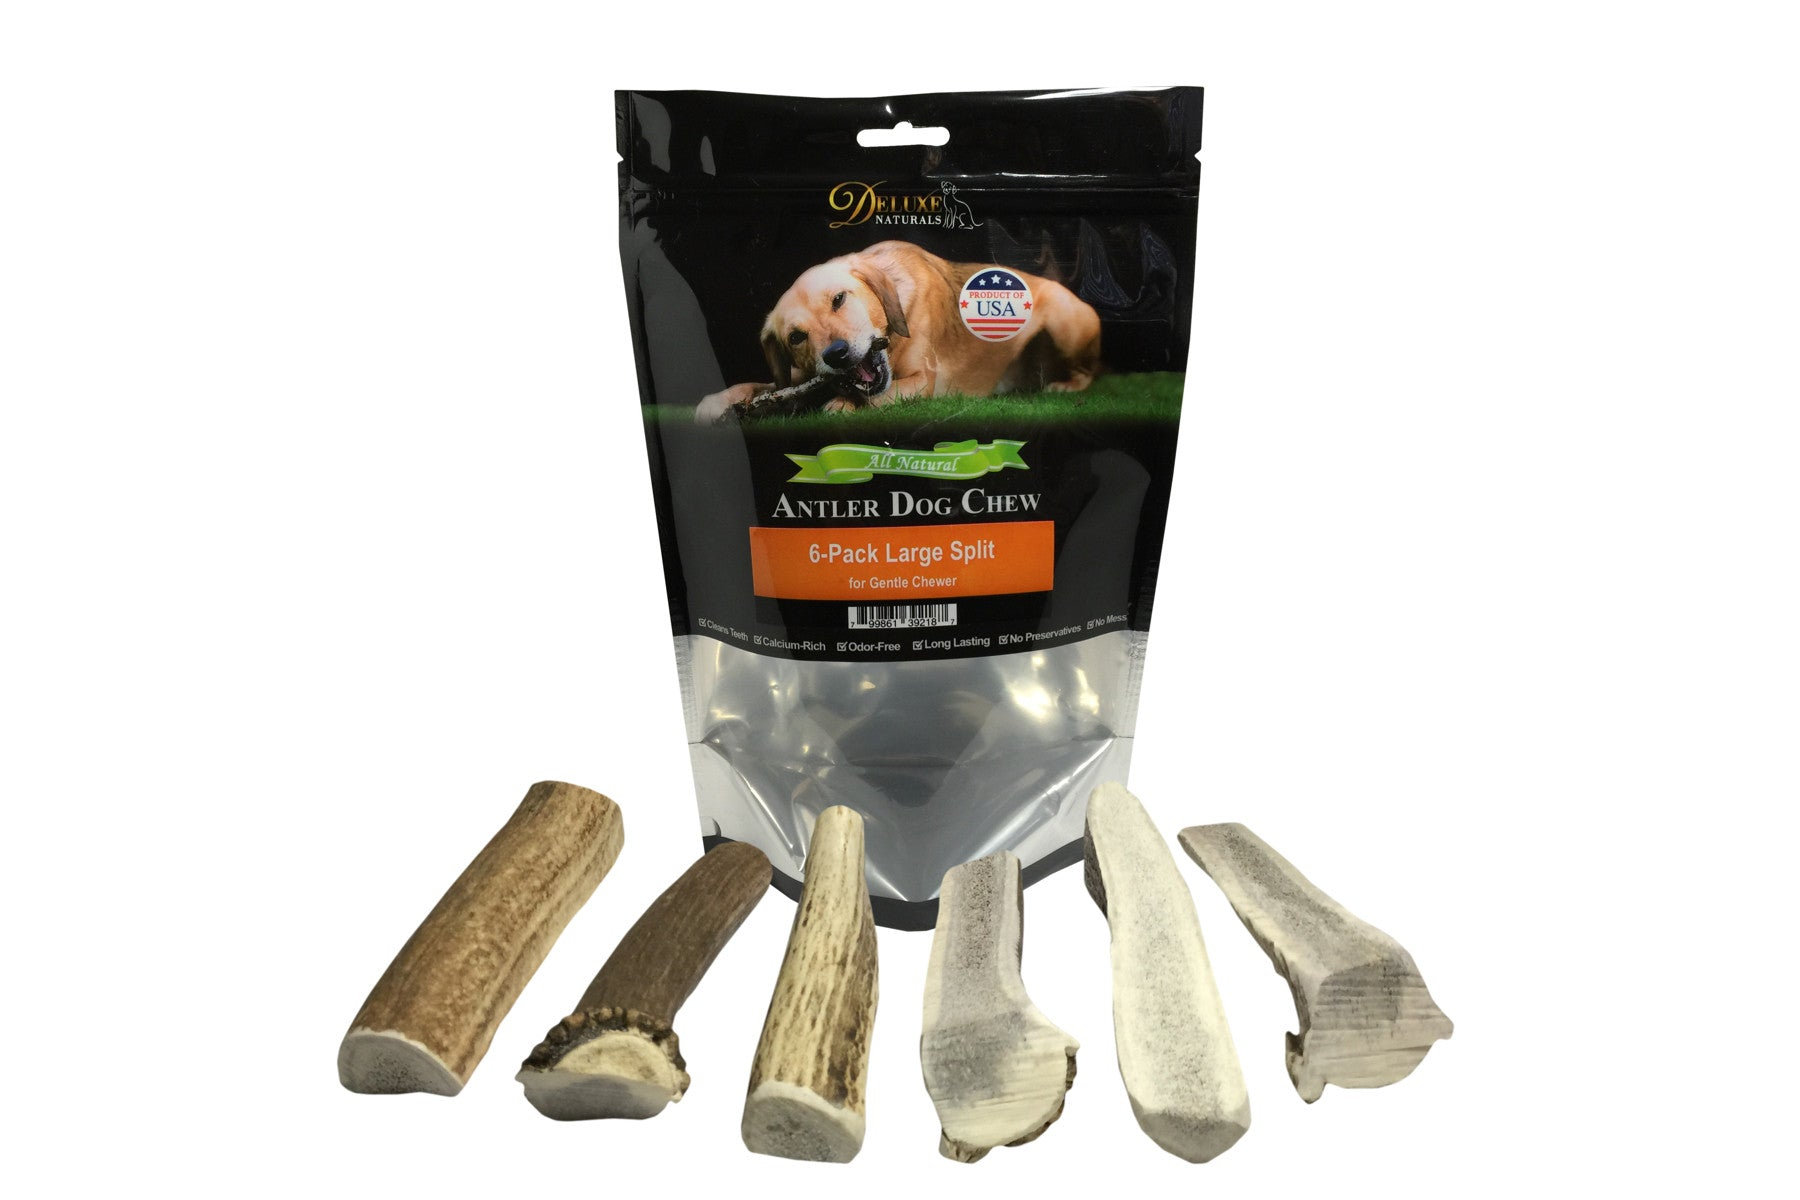 6-Pack Large Split Elk Antler Chew